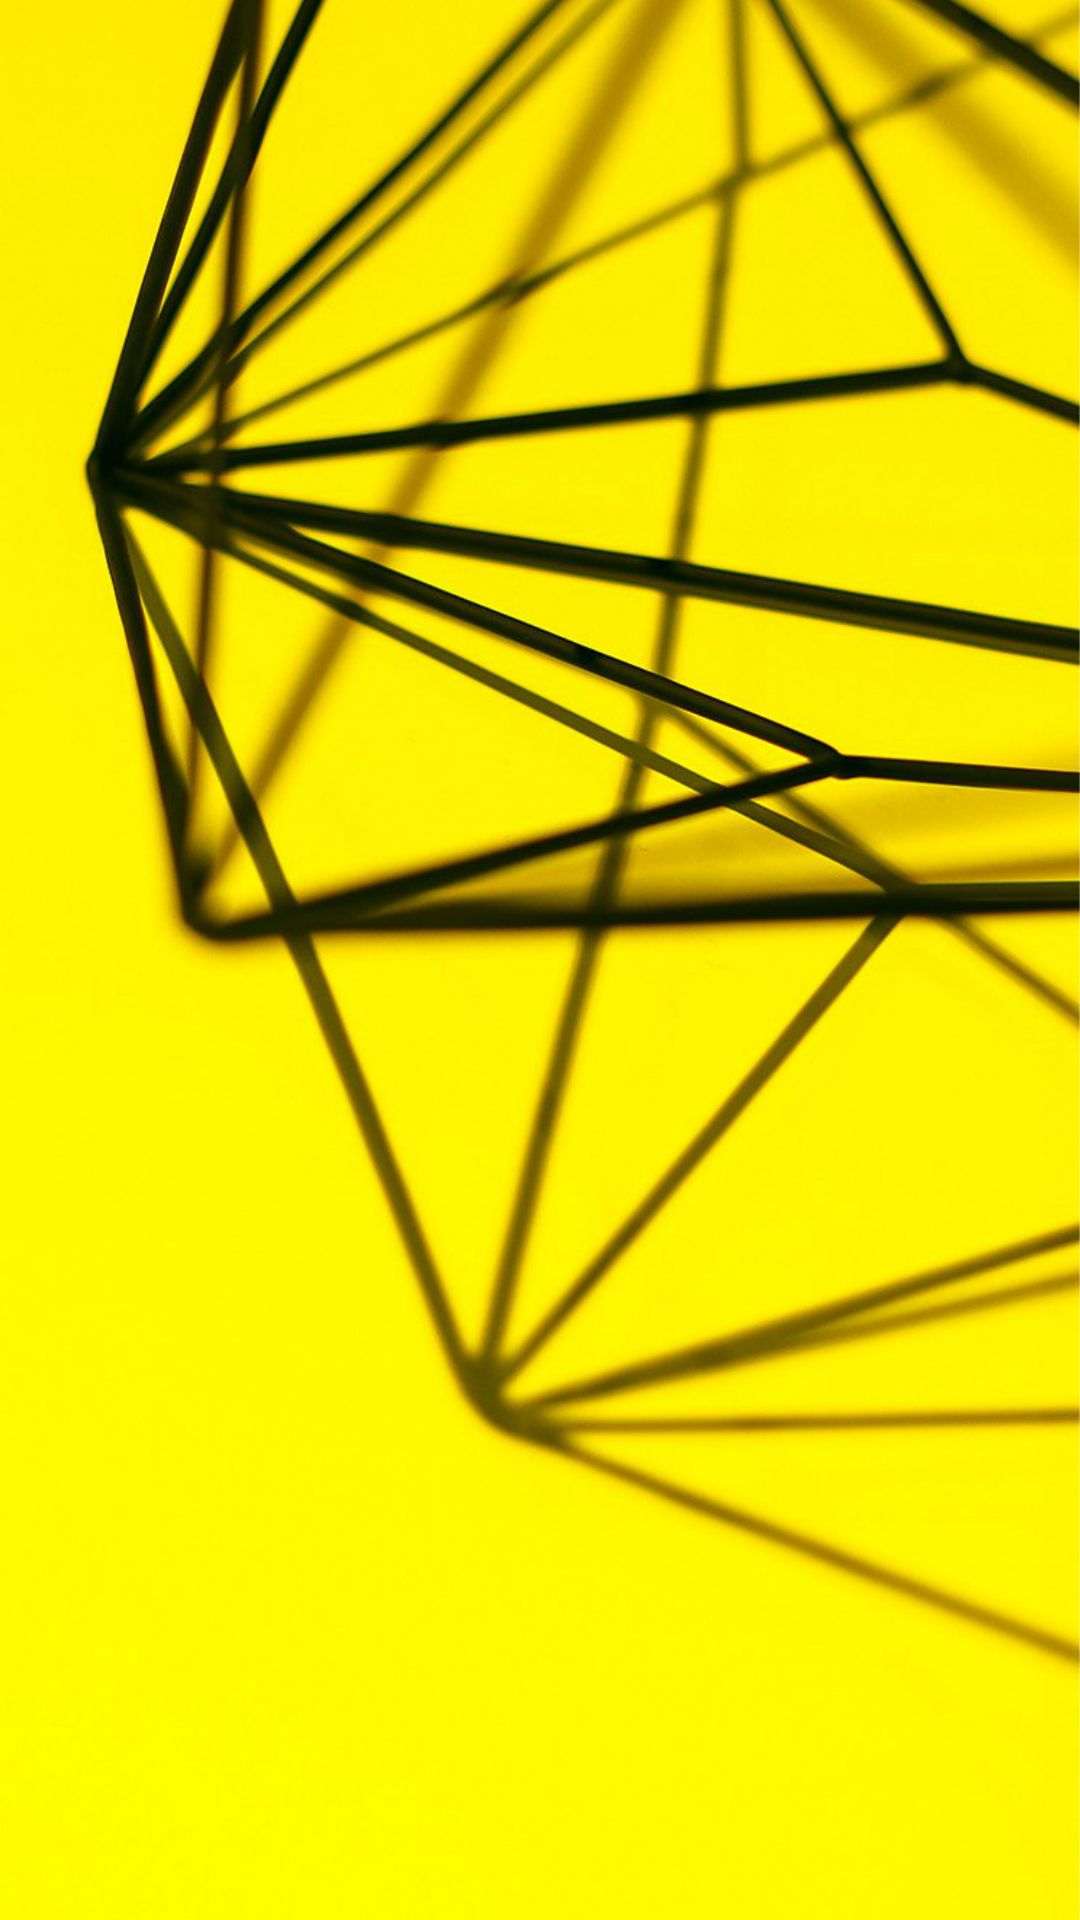 Simple Design Deco Yellow Pattern iPhone 6 wallpaper